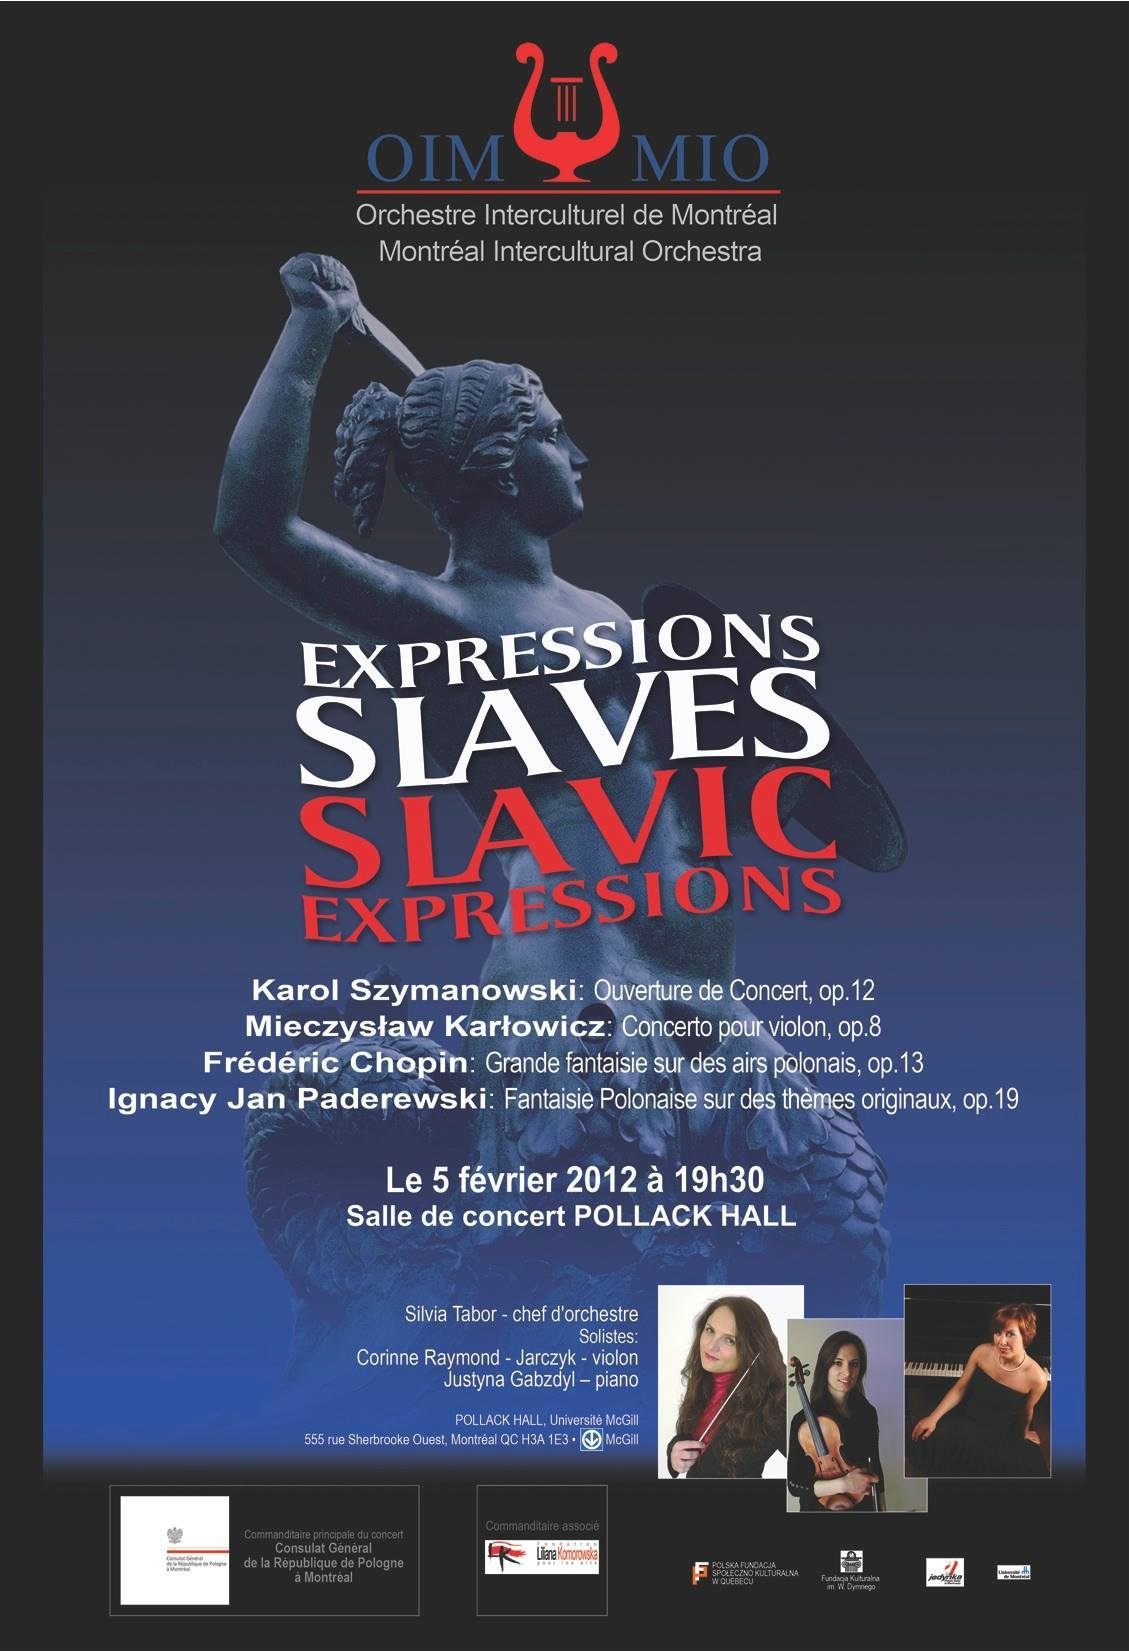 Silvia Tabor in Expressions Slaves (Slavic Expressions).